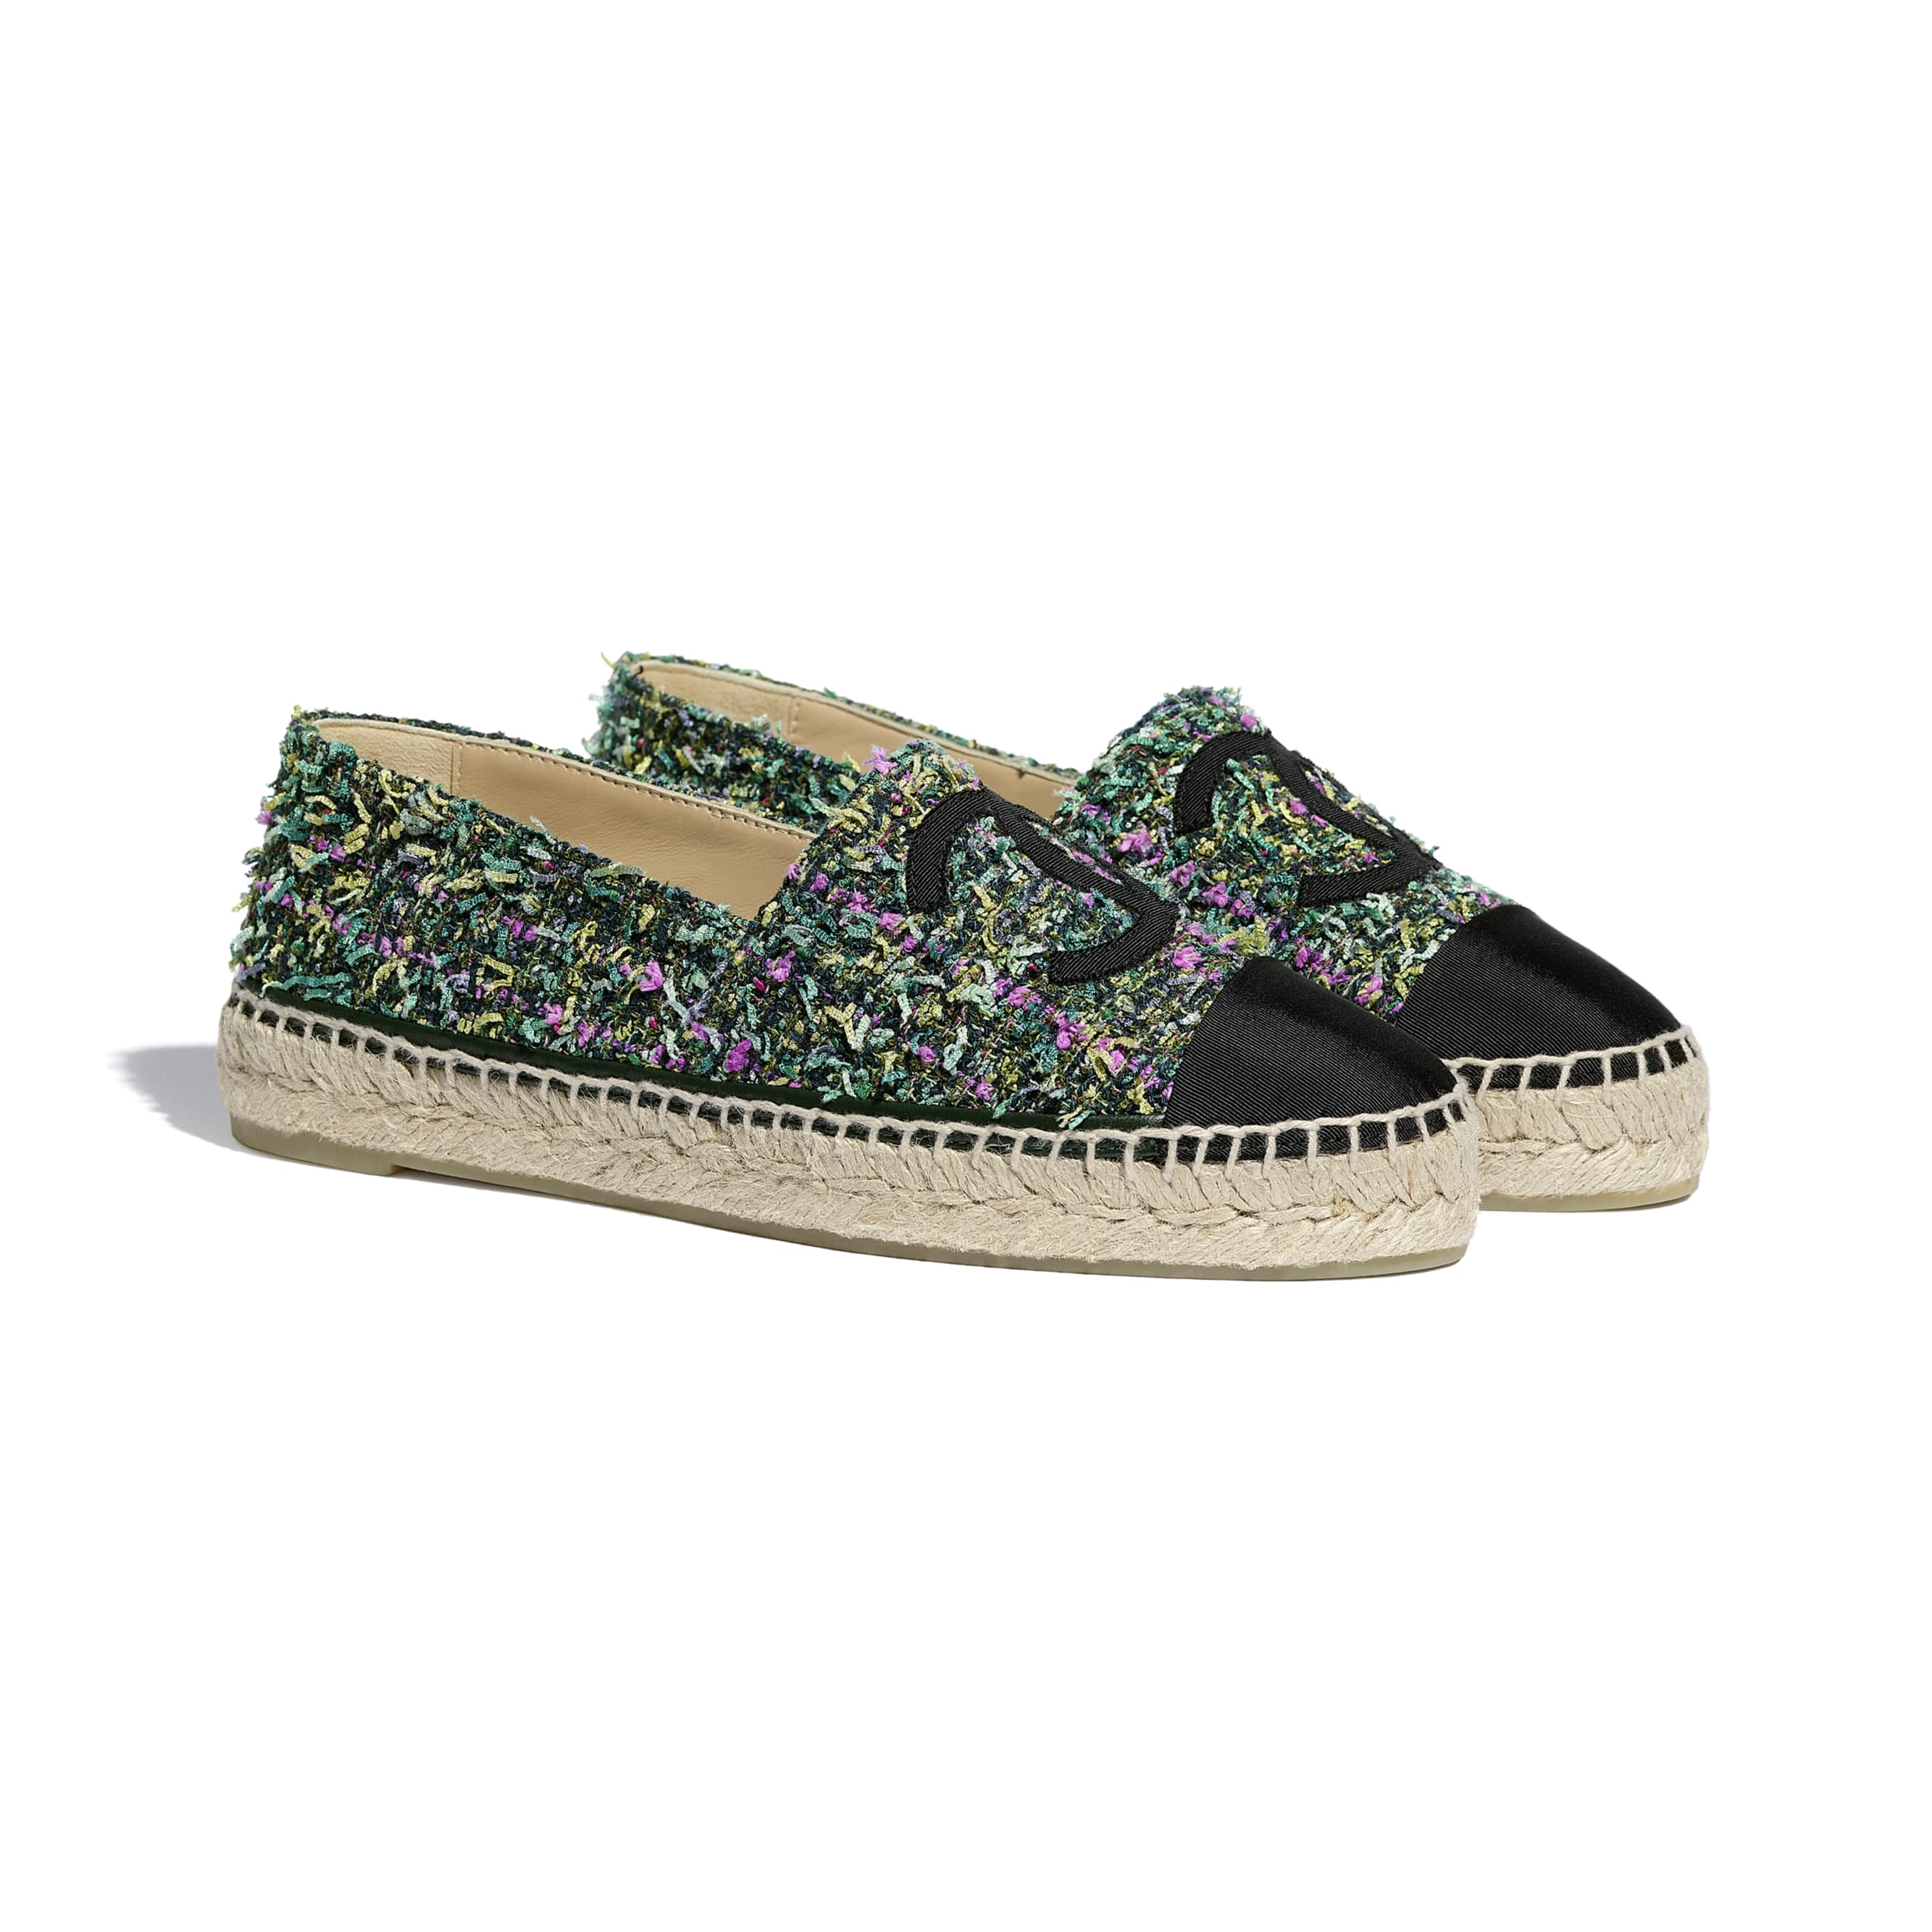 Espadrilles - Green, Pink, Yellow & Black - Tweed & Grosgrain - CHANEL - Alternative view - see standard sized version